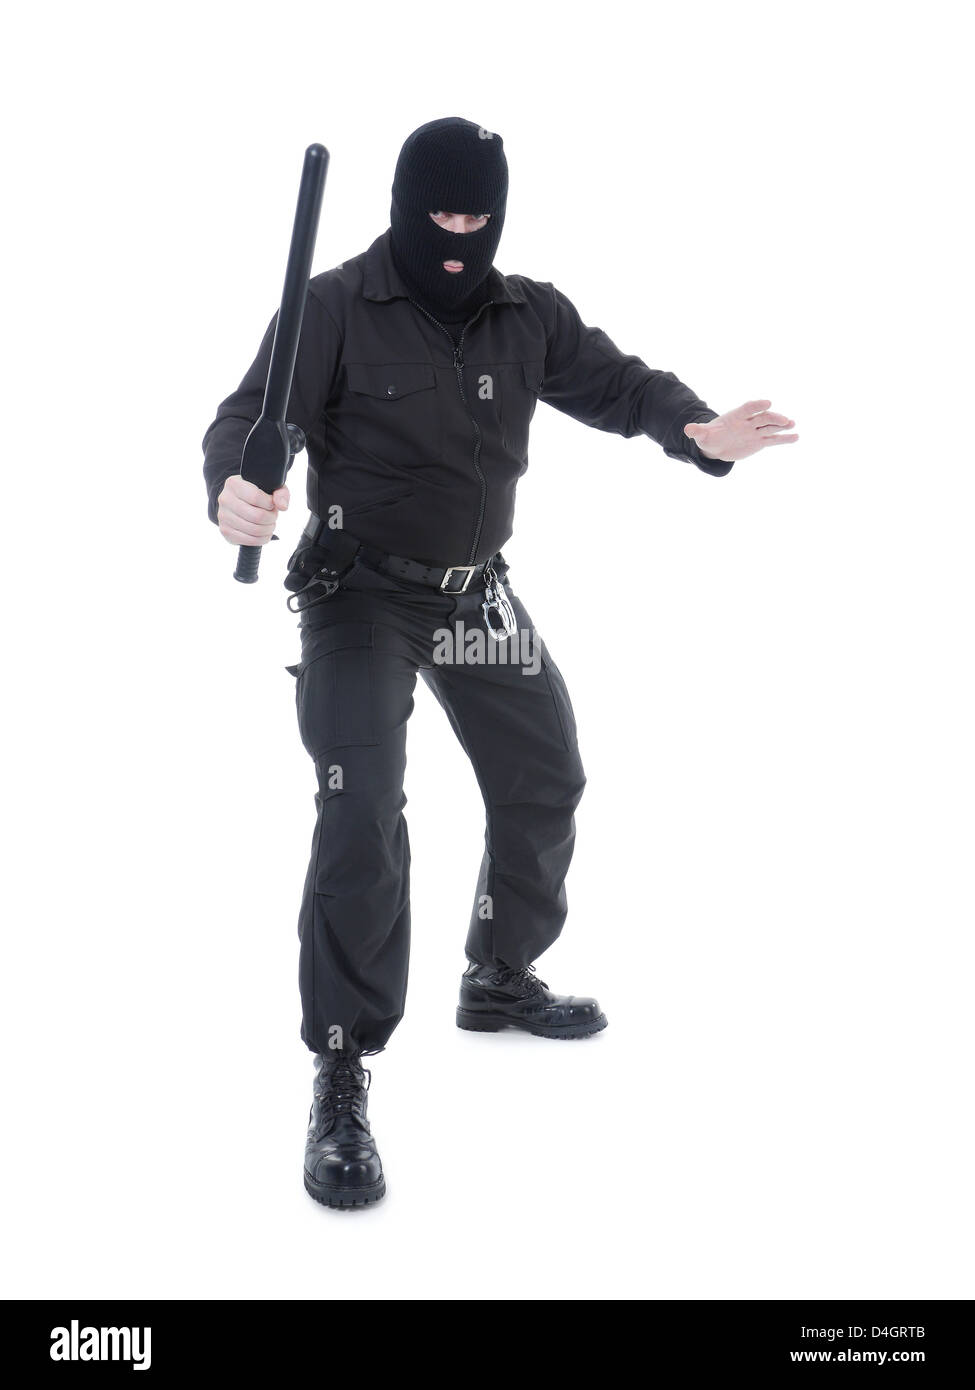 Anti-terrorist police guy wearing black uniform and black mask holding firmly police club in one hand ready for - Stock Image